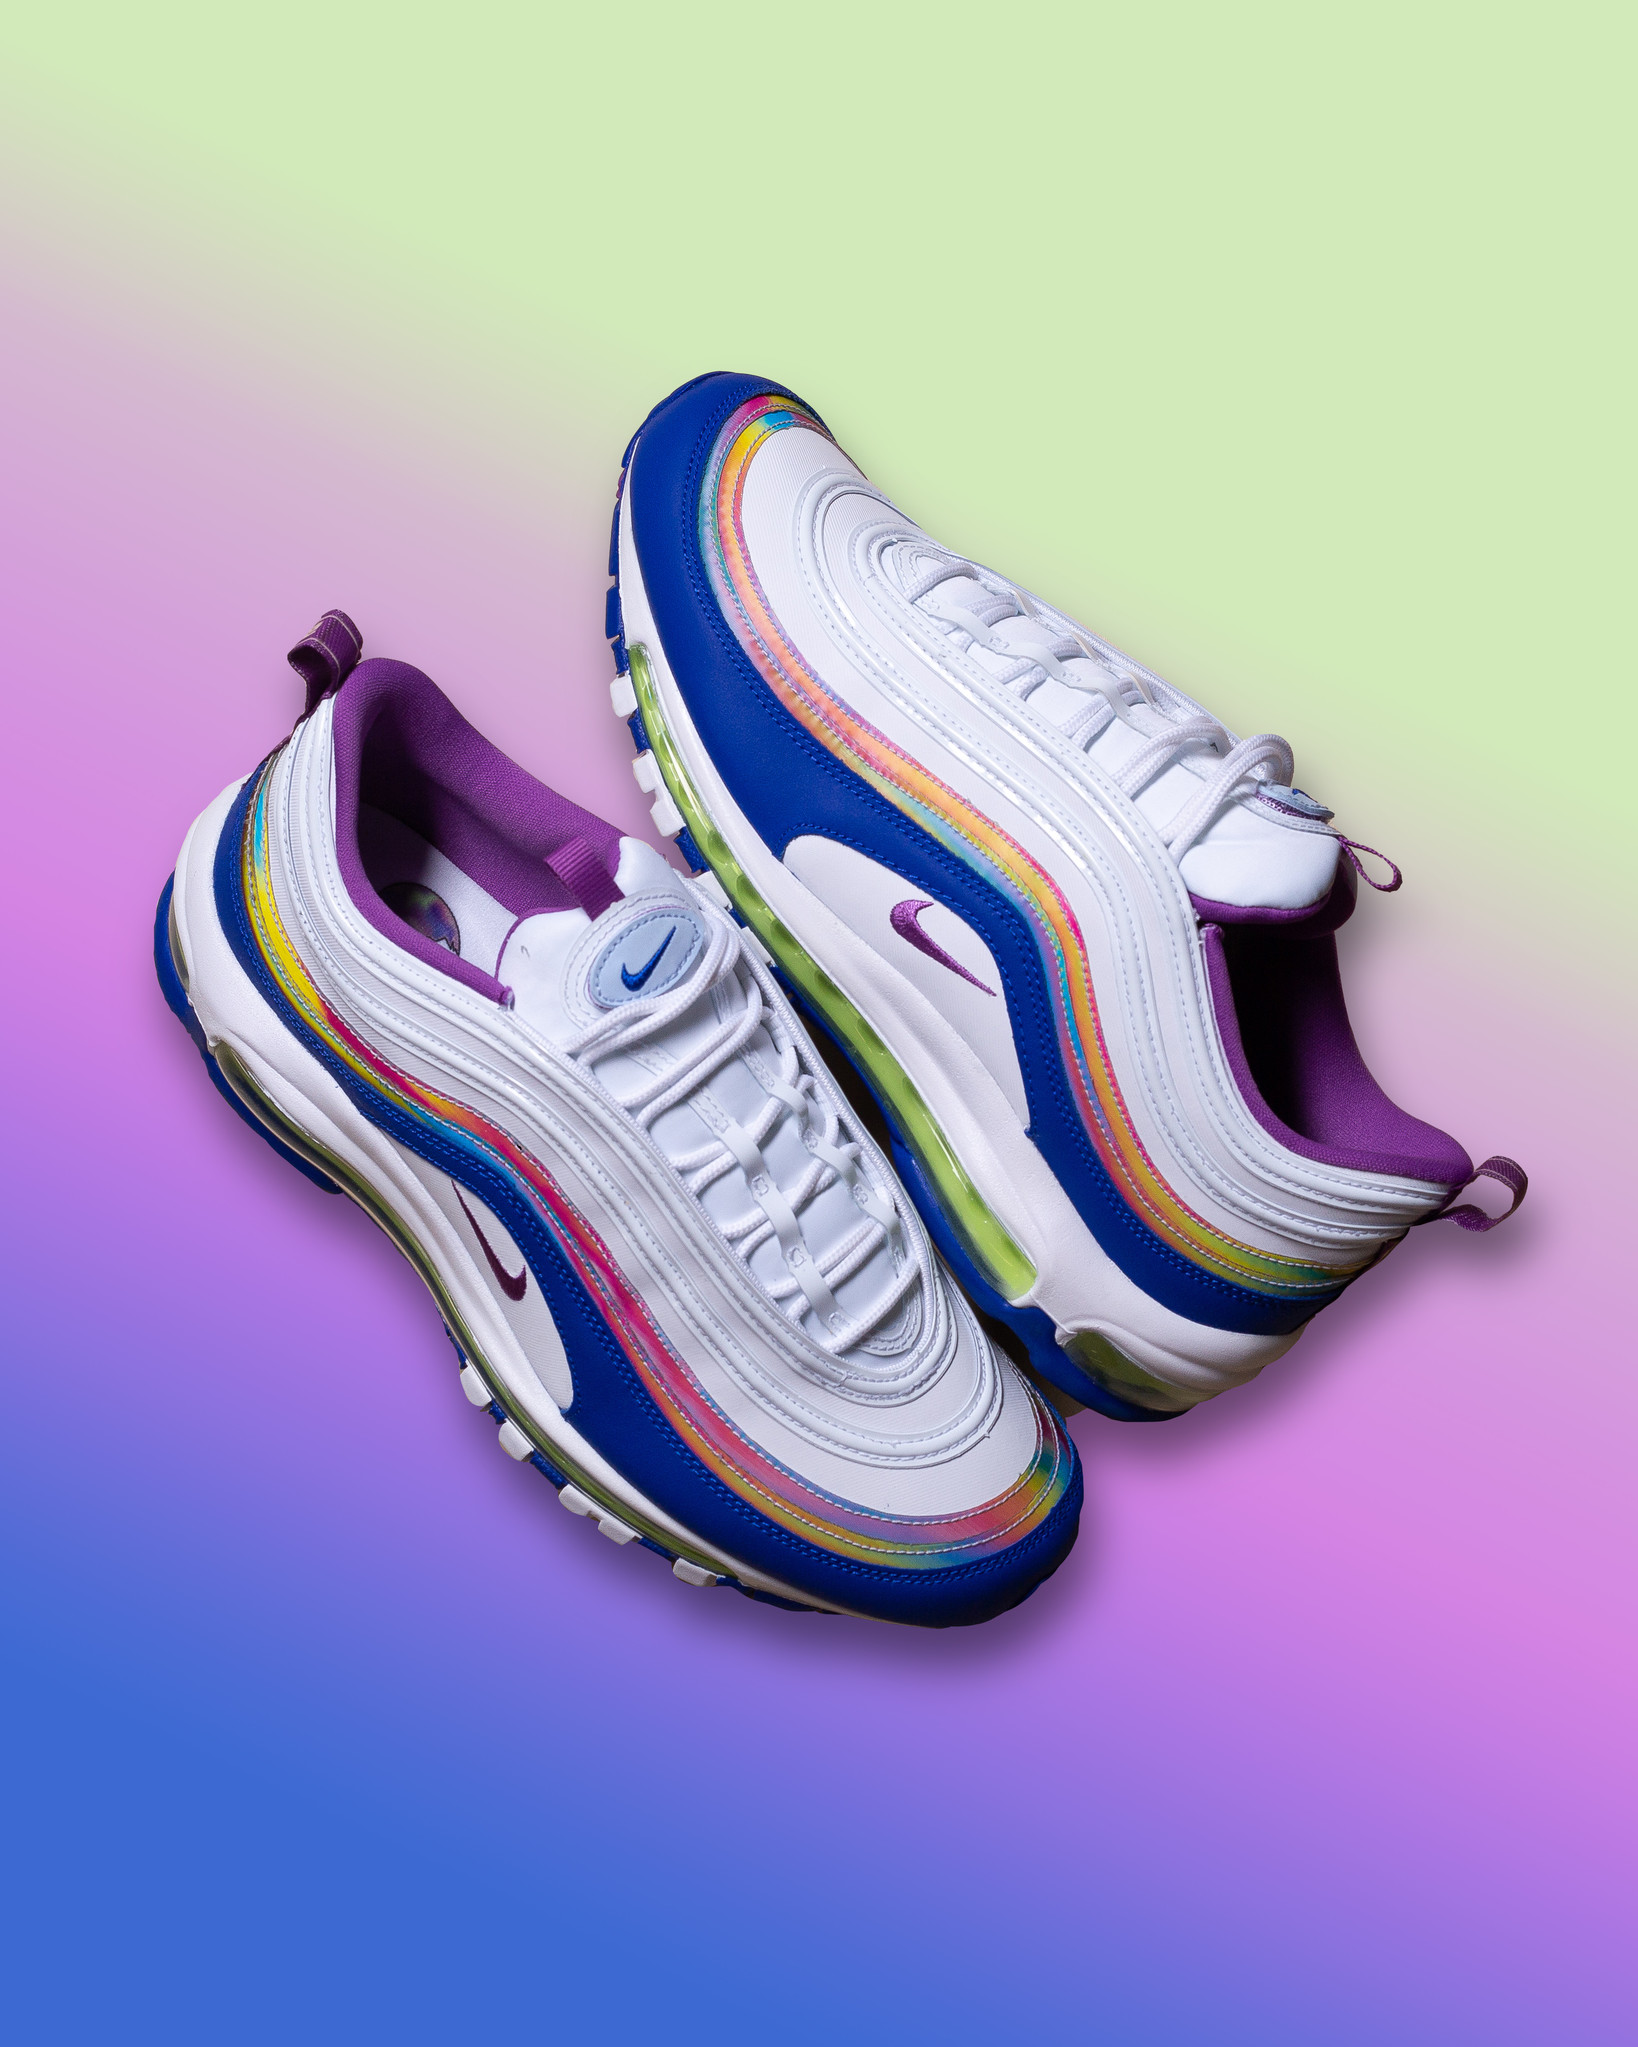 Nike Air Max 97 White/Purple Nebula